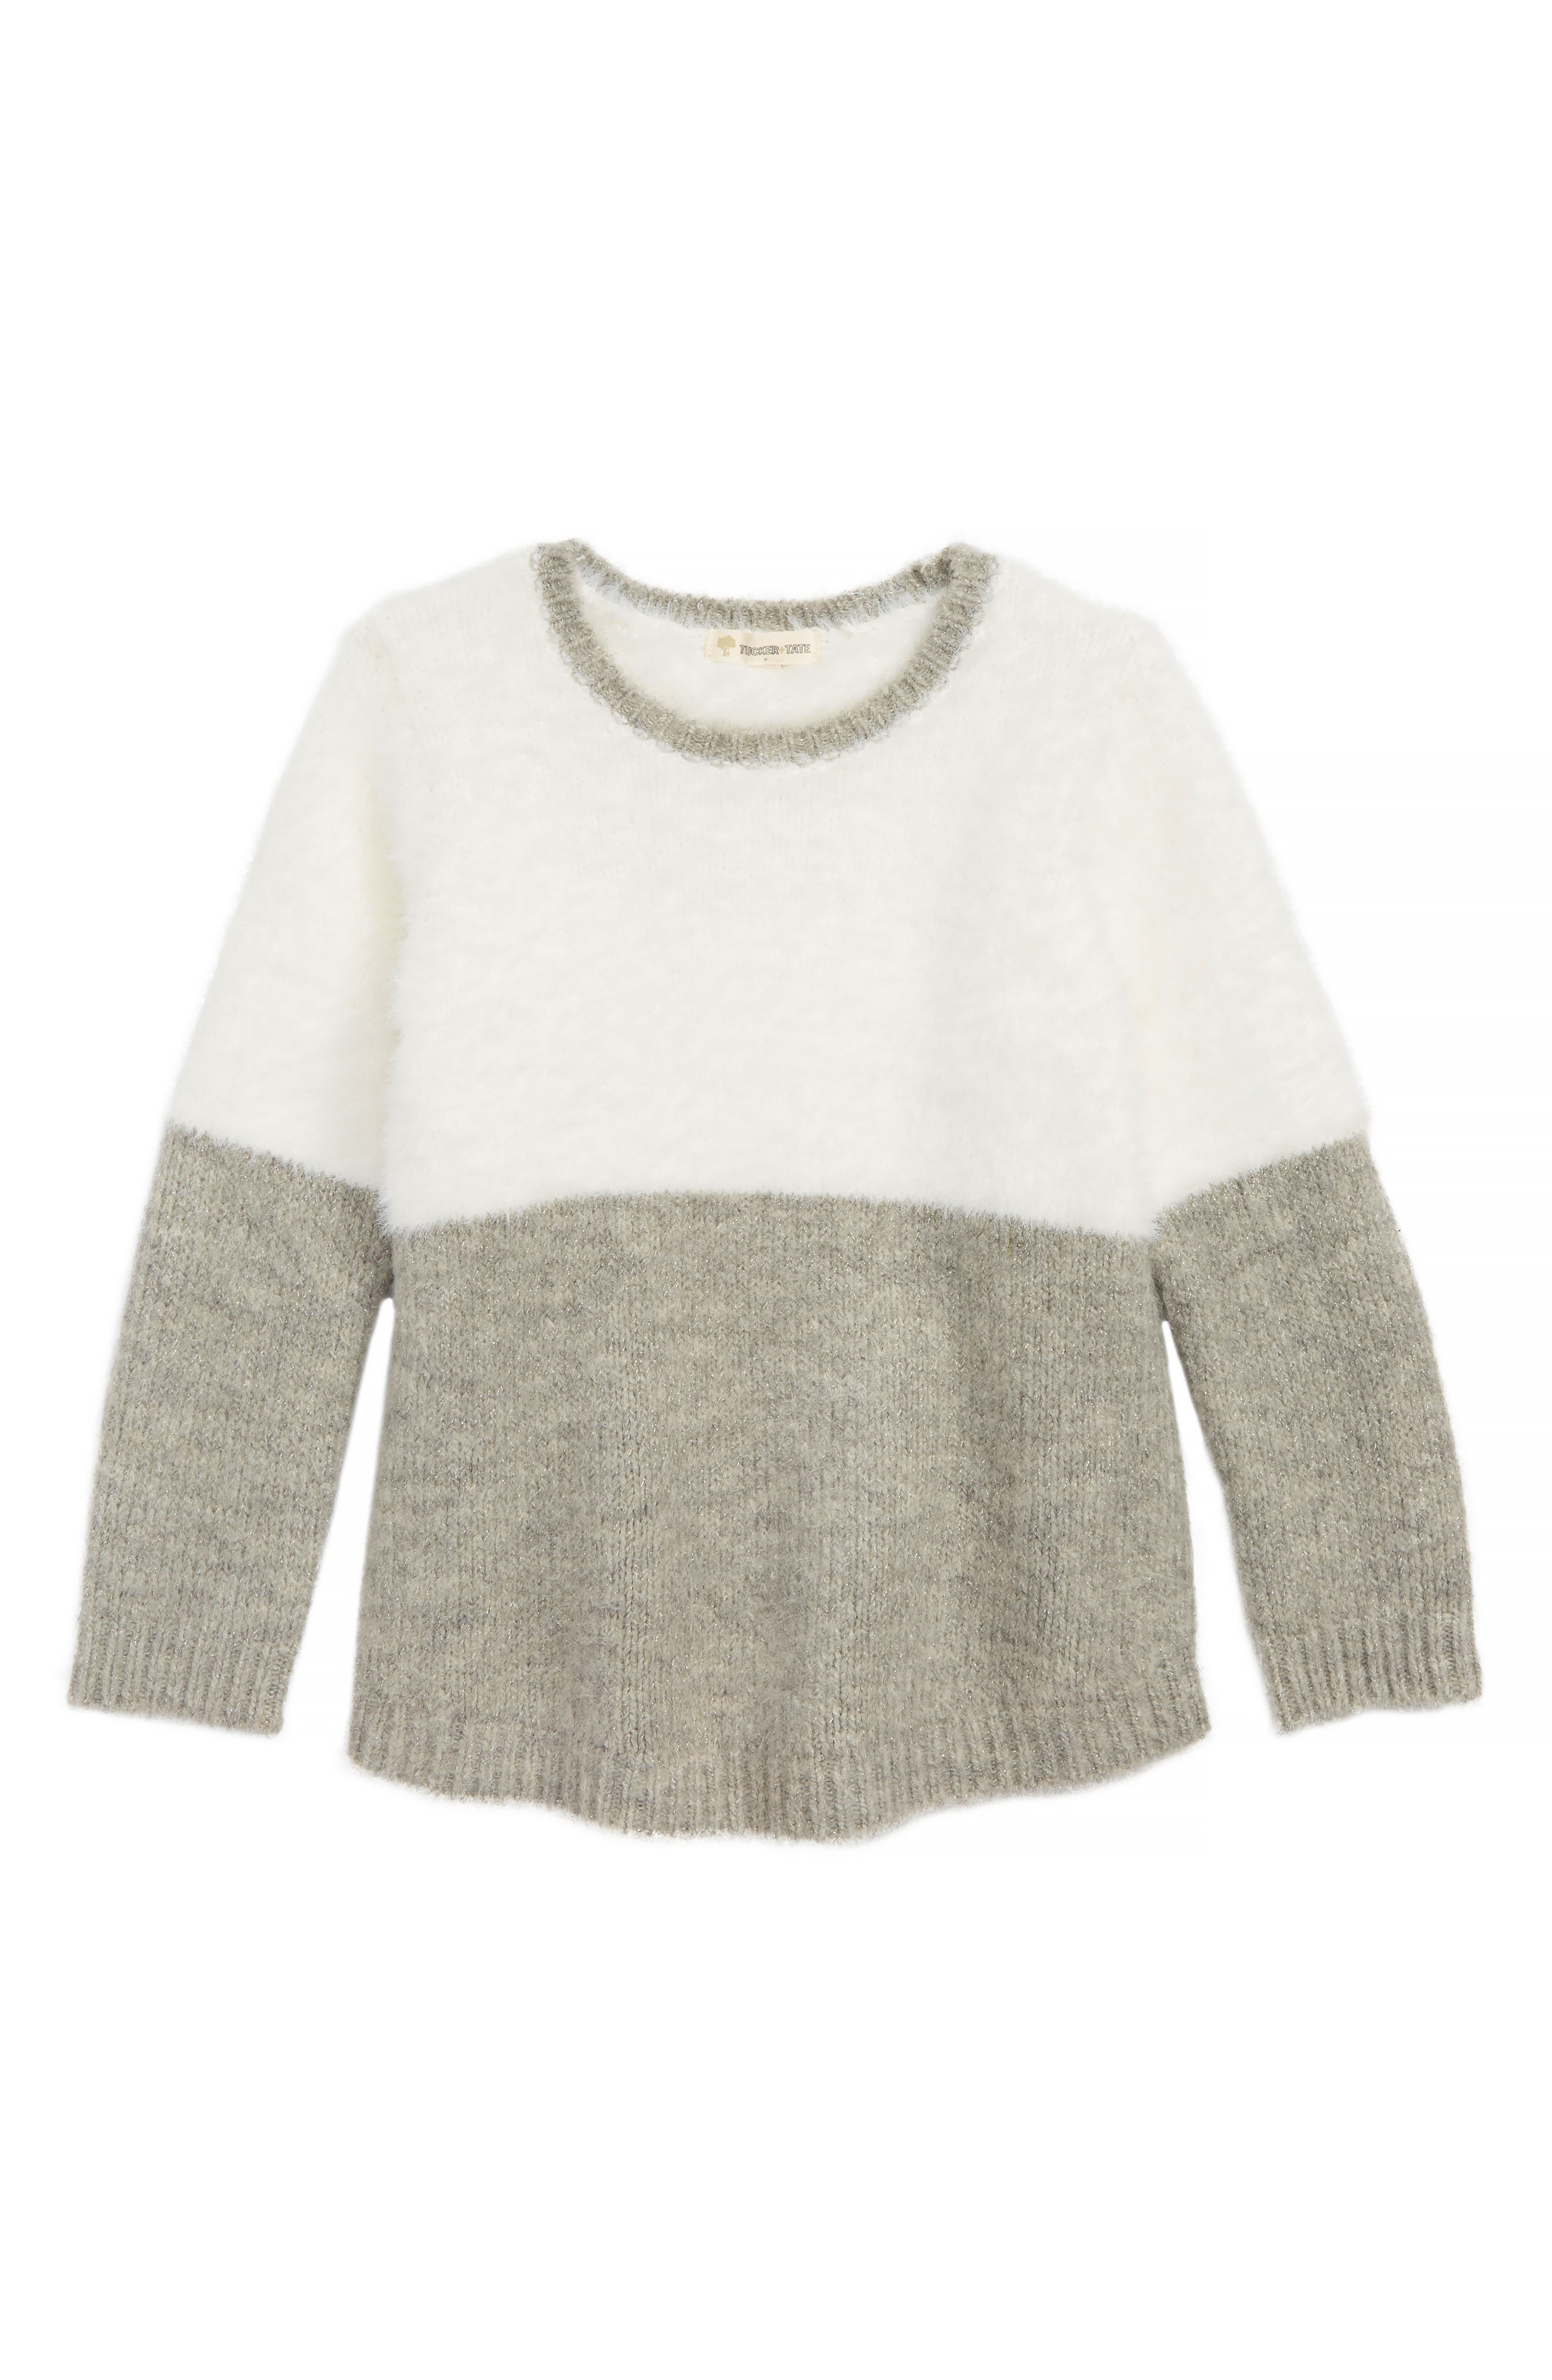 Fuzzy Colorblock Sweater,                             Main thumbnail 1, color,                             900